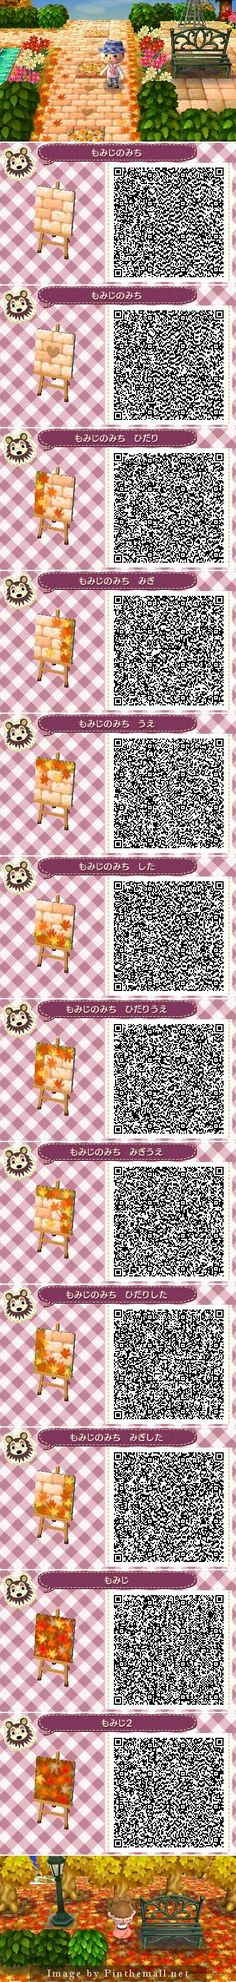 Autumn Leaves Pathway QR codes: